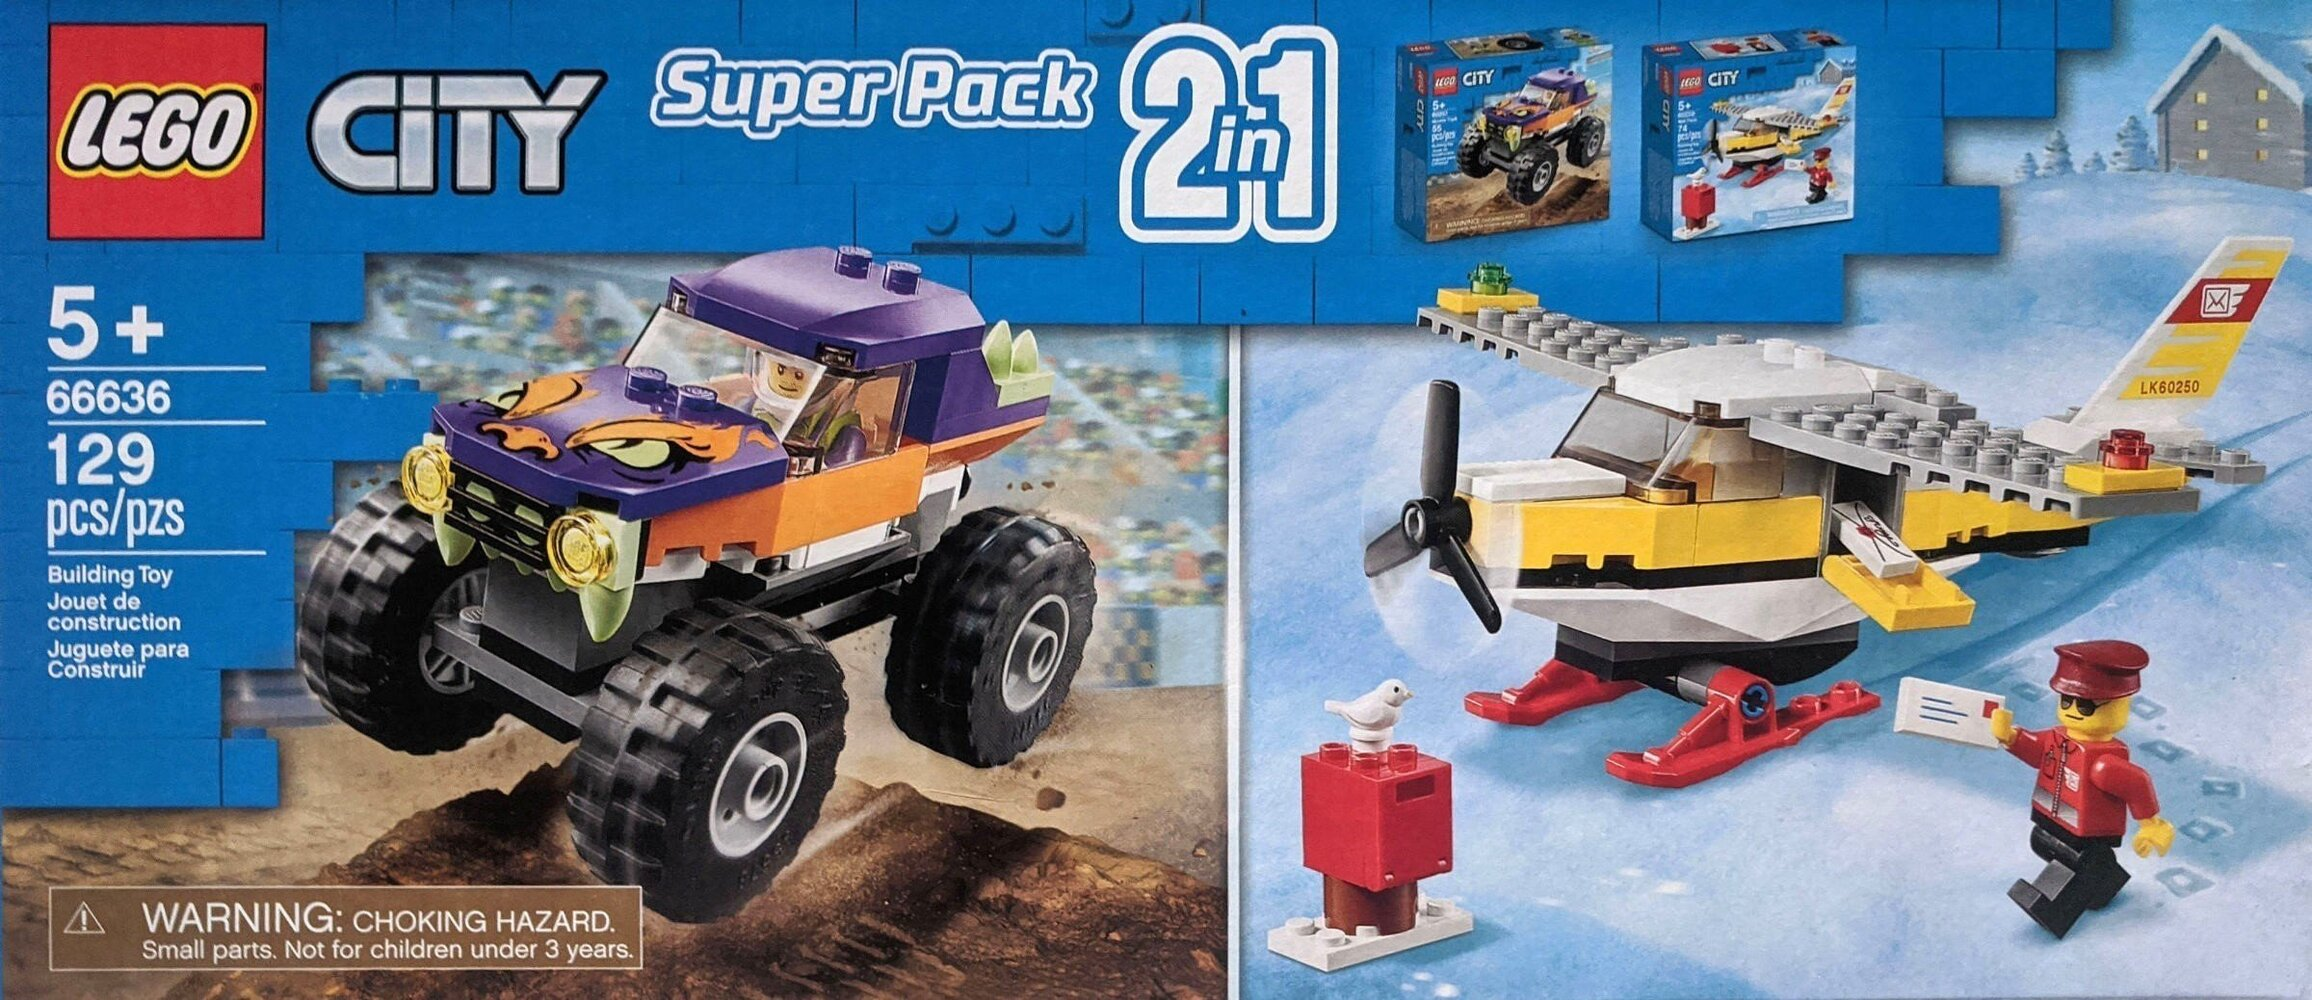 Super Pack 2 in 1